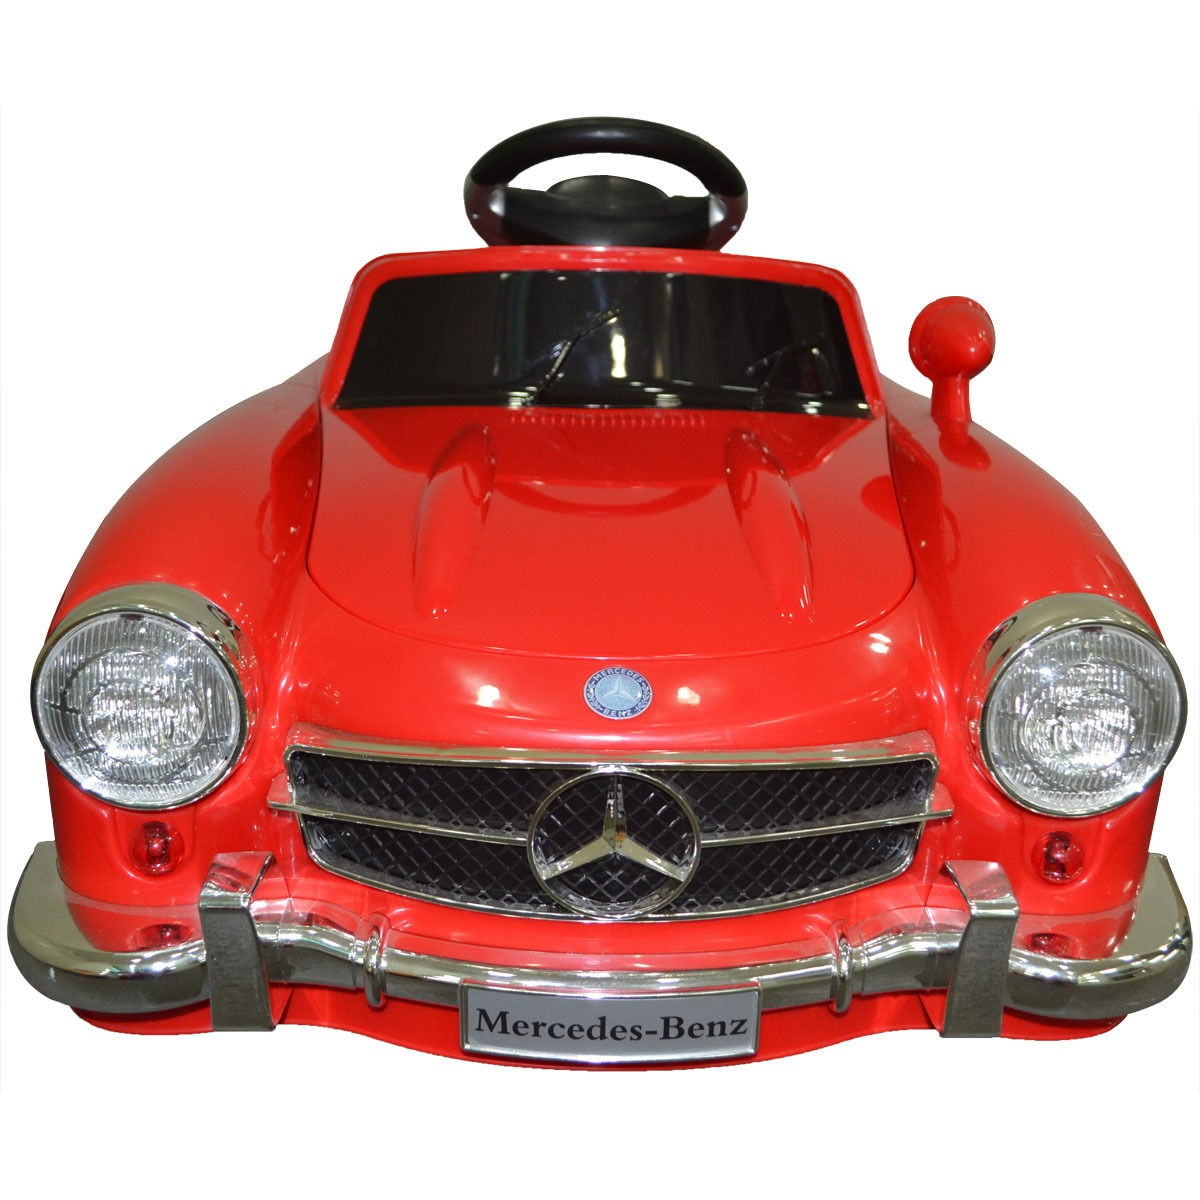 lh mercedes benz 300sl amg rc electric toy kids baby ride. Black Bedroom Furniture Sets. Home Design Ideas